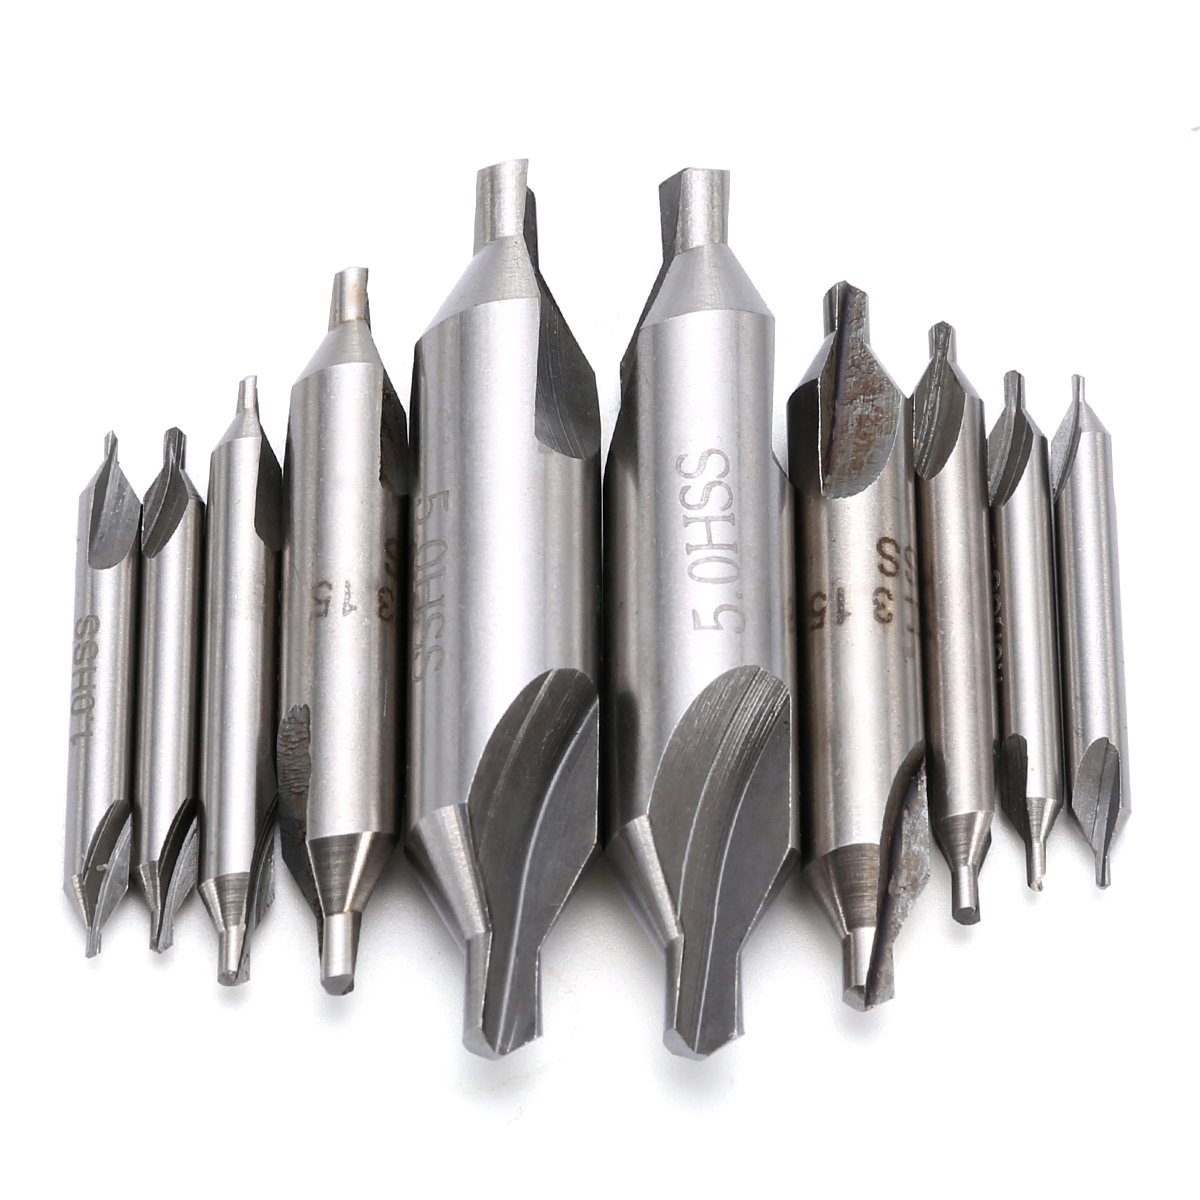 10pcs  60 Degree Combined Countersink Center Drills Bits 1/1.5/2/3.15/5mm High Speed Steel For Power Tools